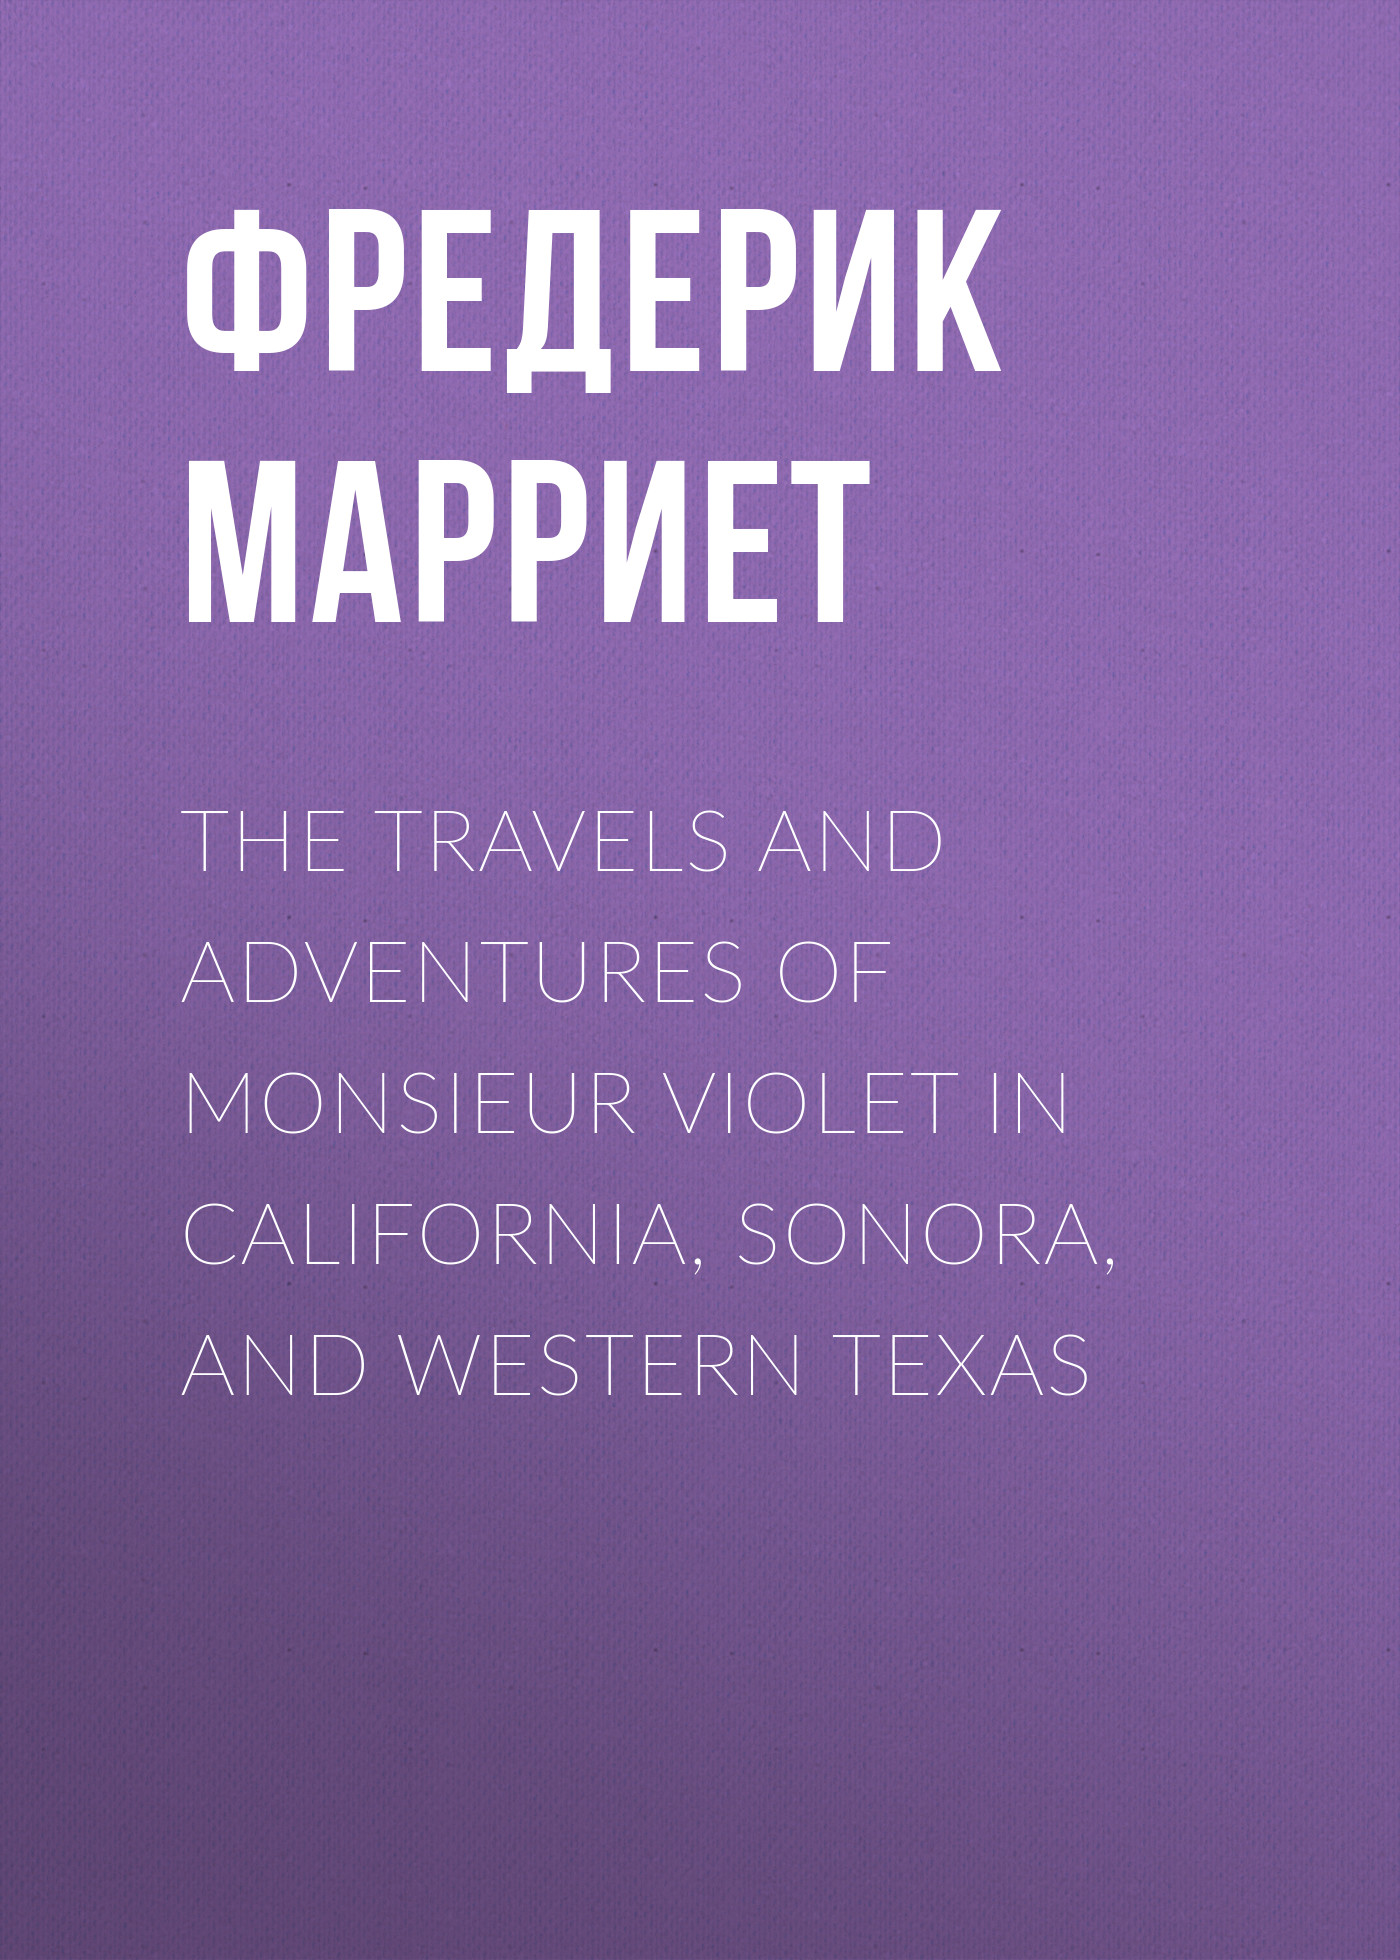 the travels and adventures of monsieur violet in california sonora and western texas